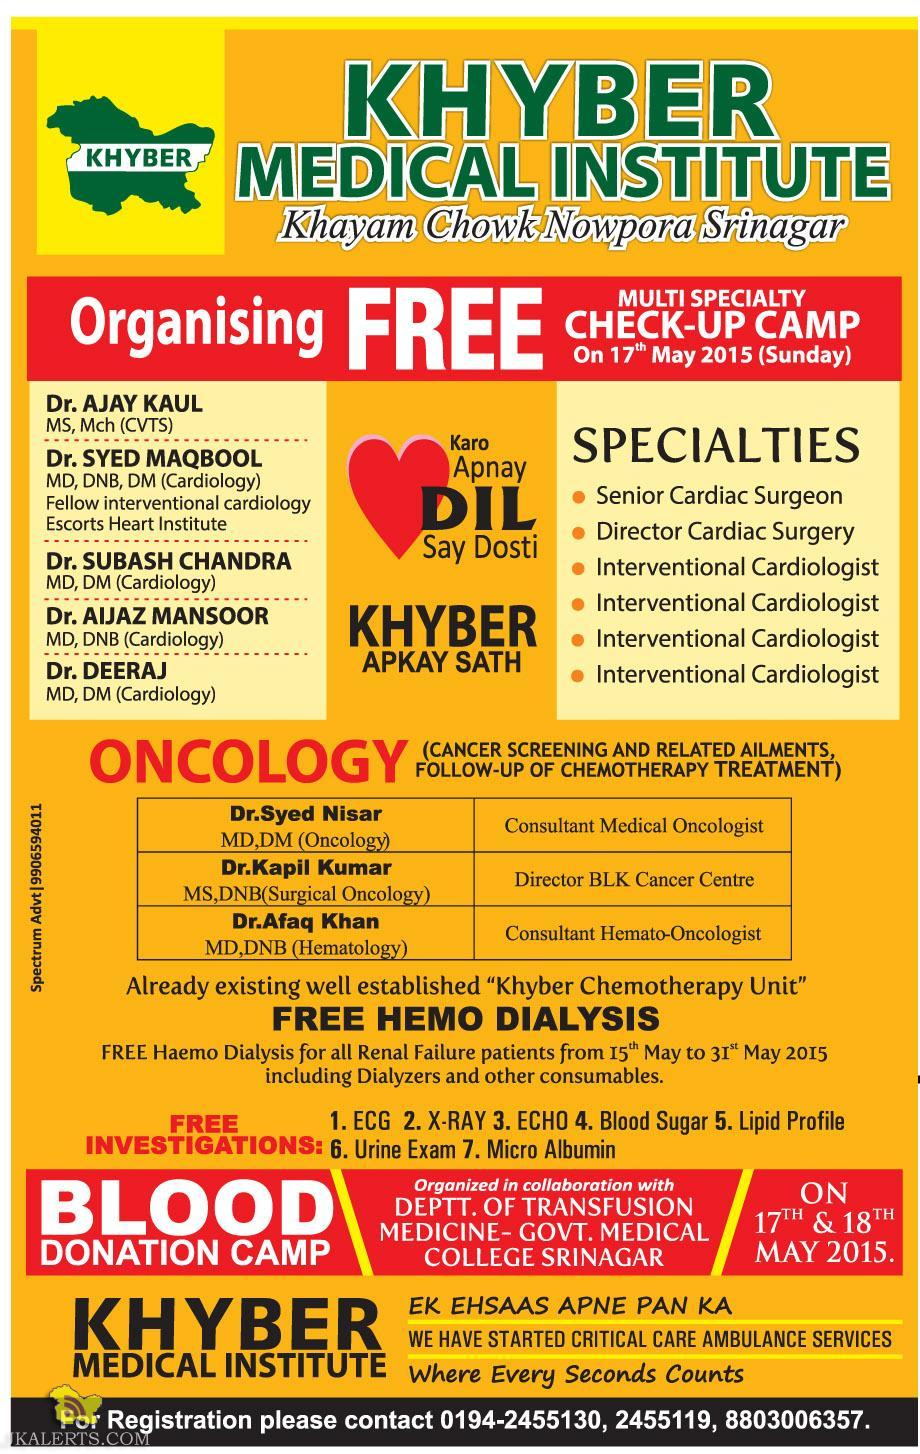 KHYBER MEDICAL INSTITUTE FREE CHECKUP CAMP